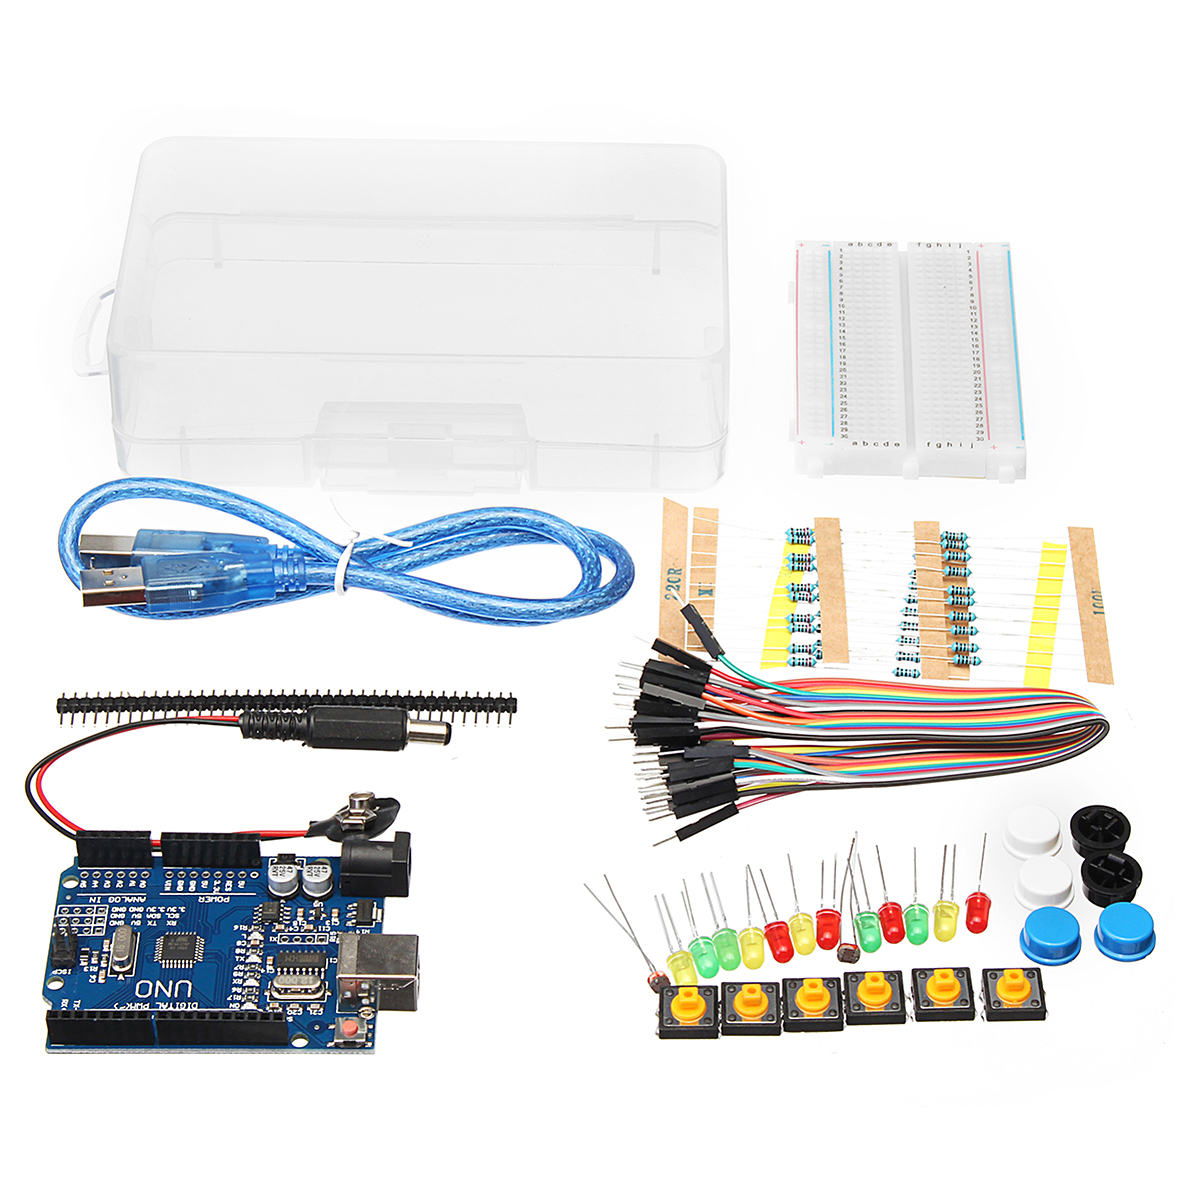 basic starter kit uno r3 mini breadboard led jumper wire button for arduino with box. Black Bedroom Furniture Sets. Home Design Ideas